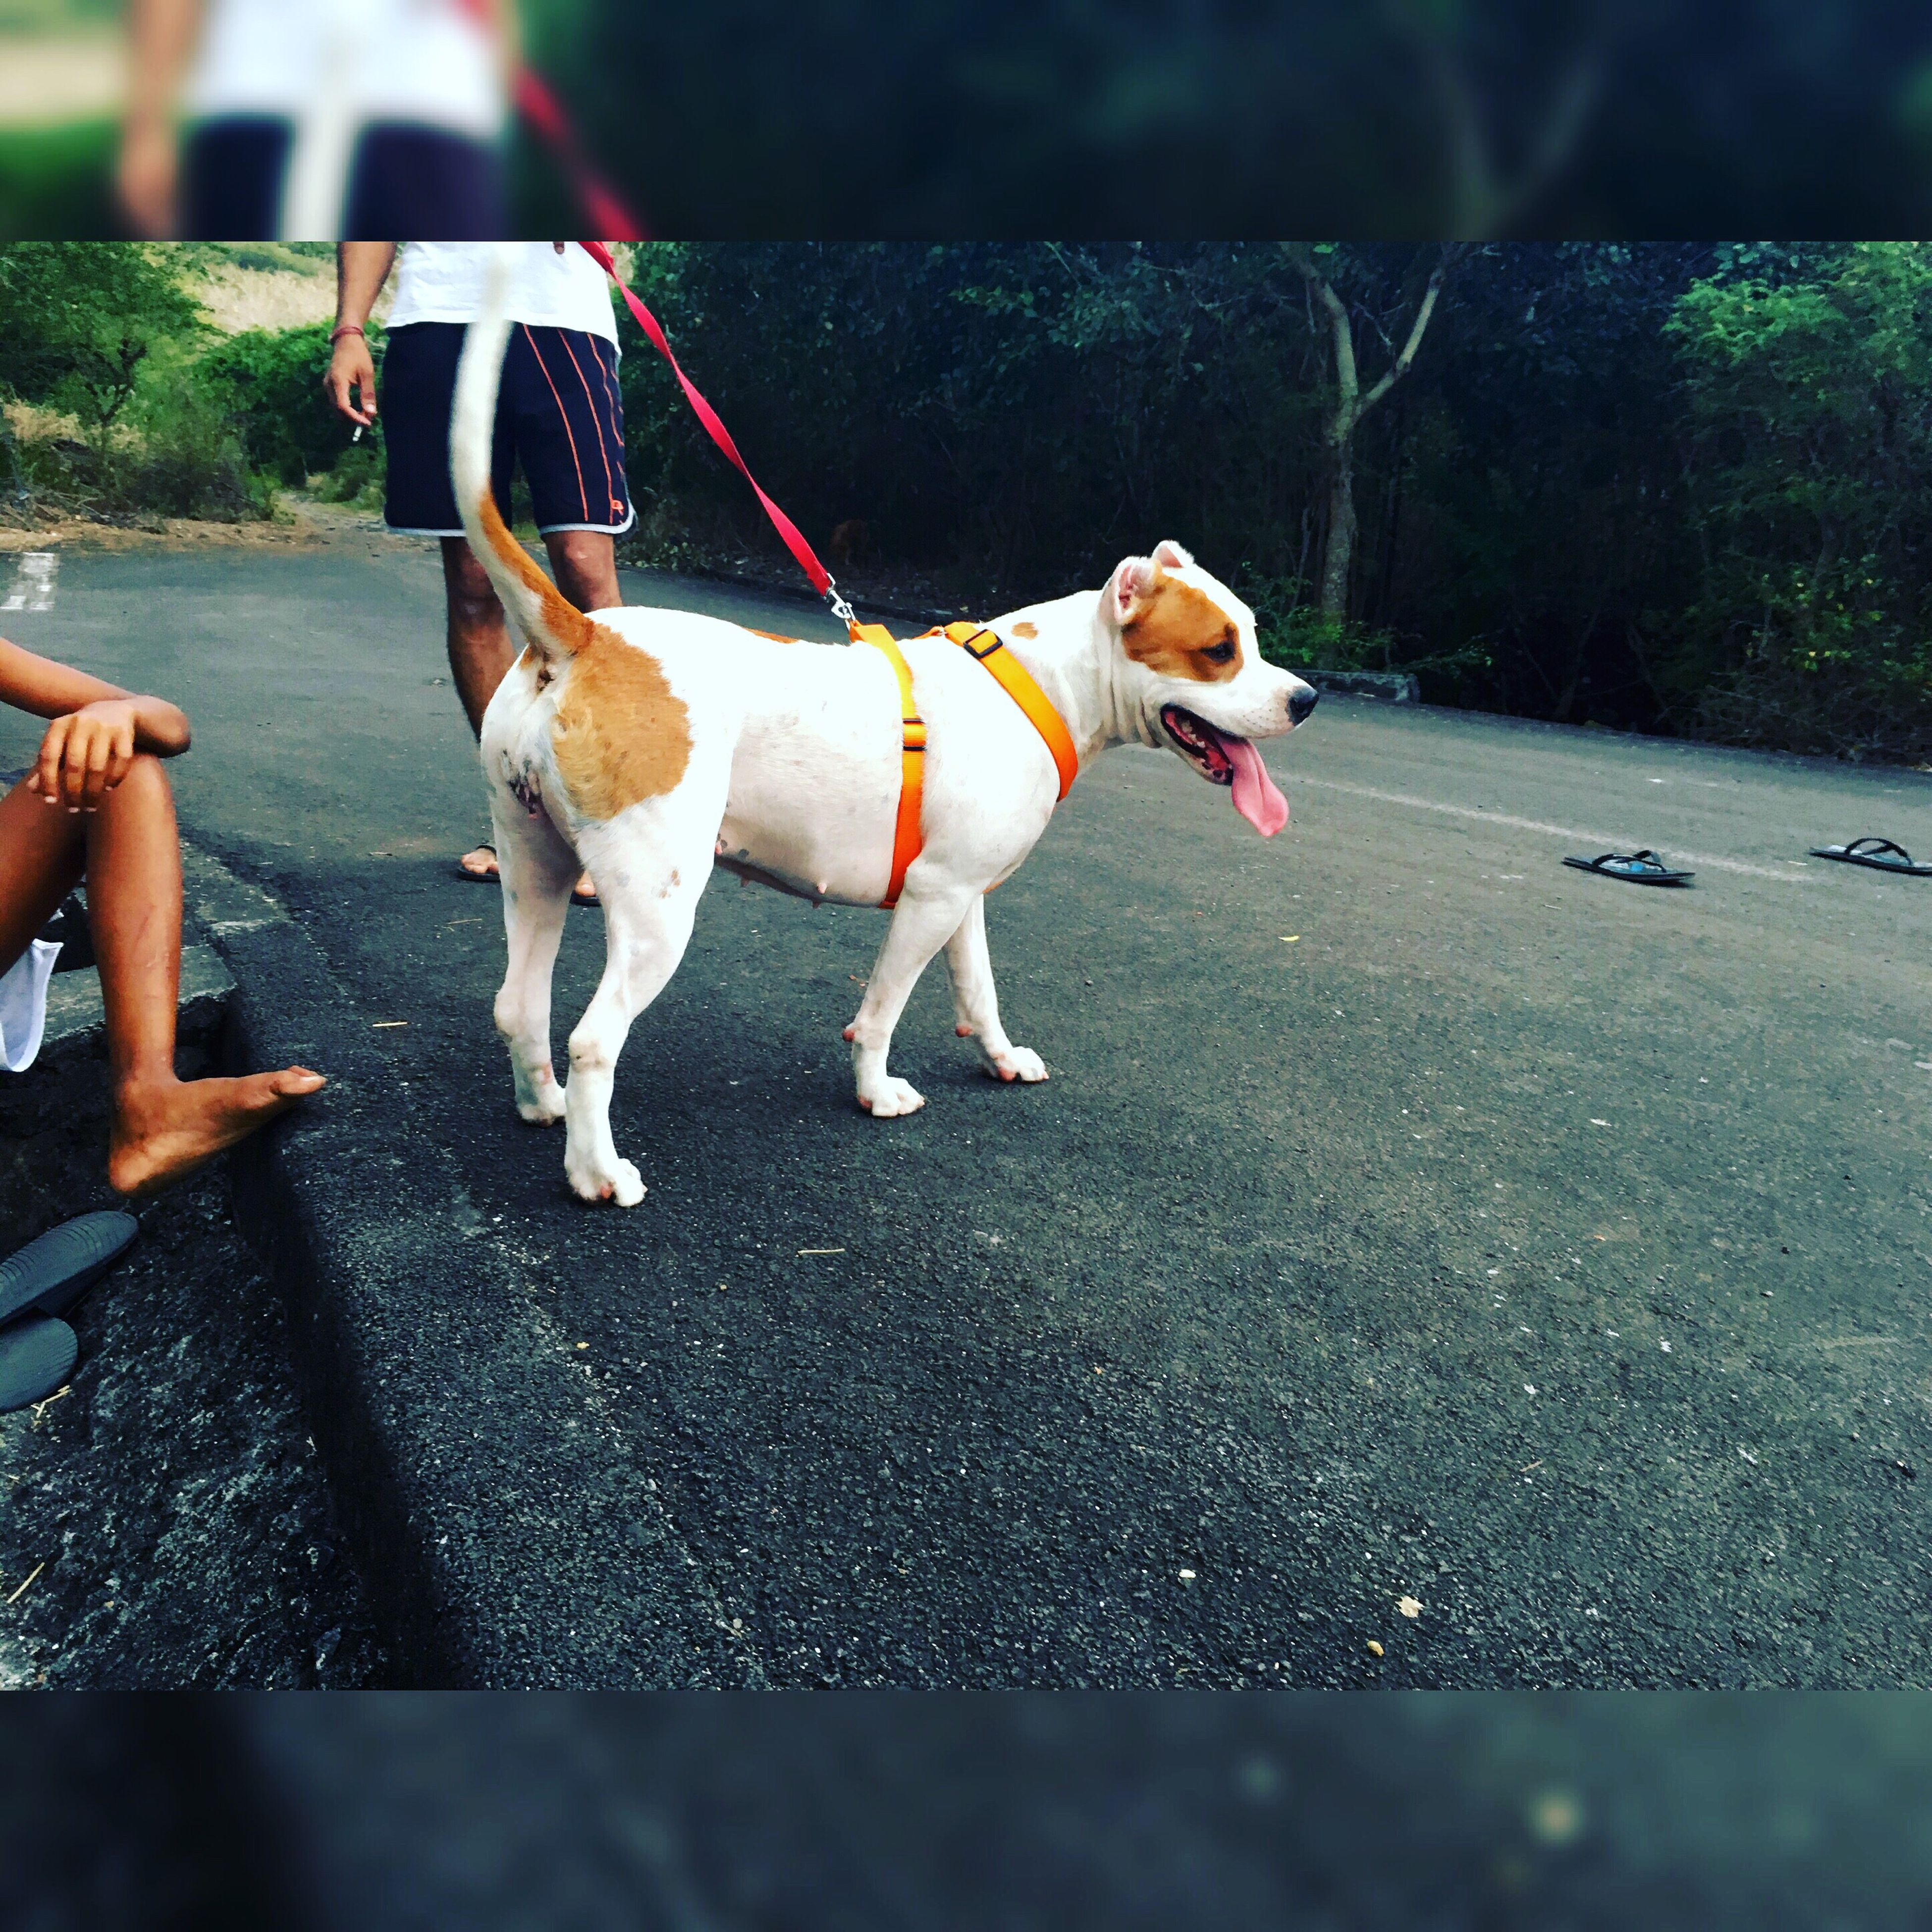 domestic animals, animal themes, one animal, pets, dog, mammal, street, road, transportation, road marking, pet leash, day, outdoors, pampered pets, zoology, animal, loyalty